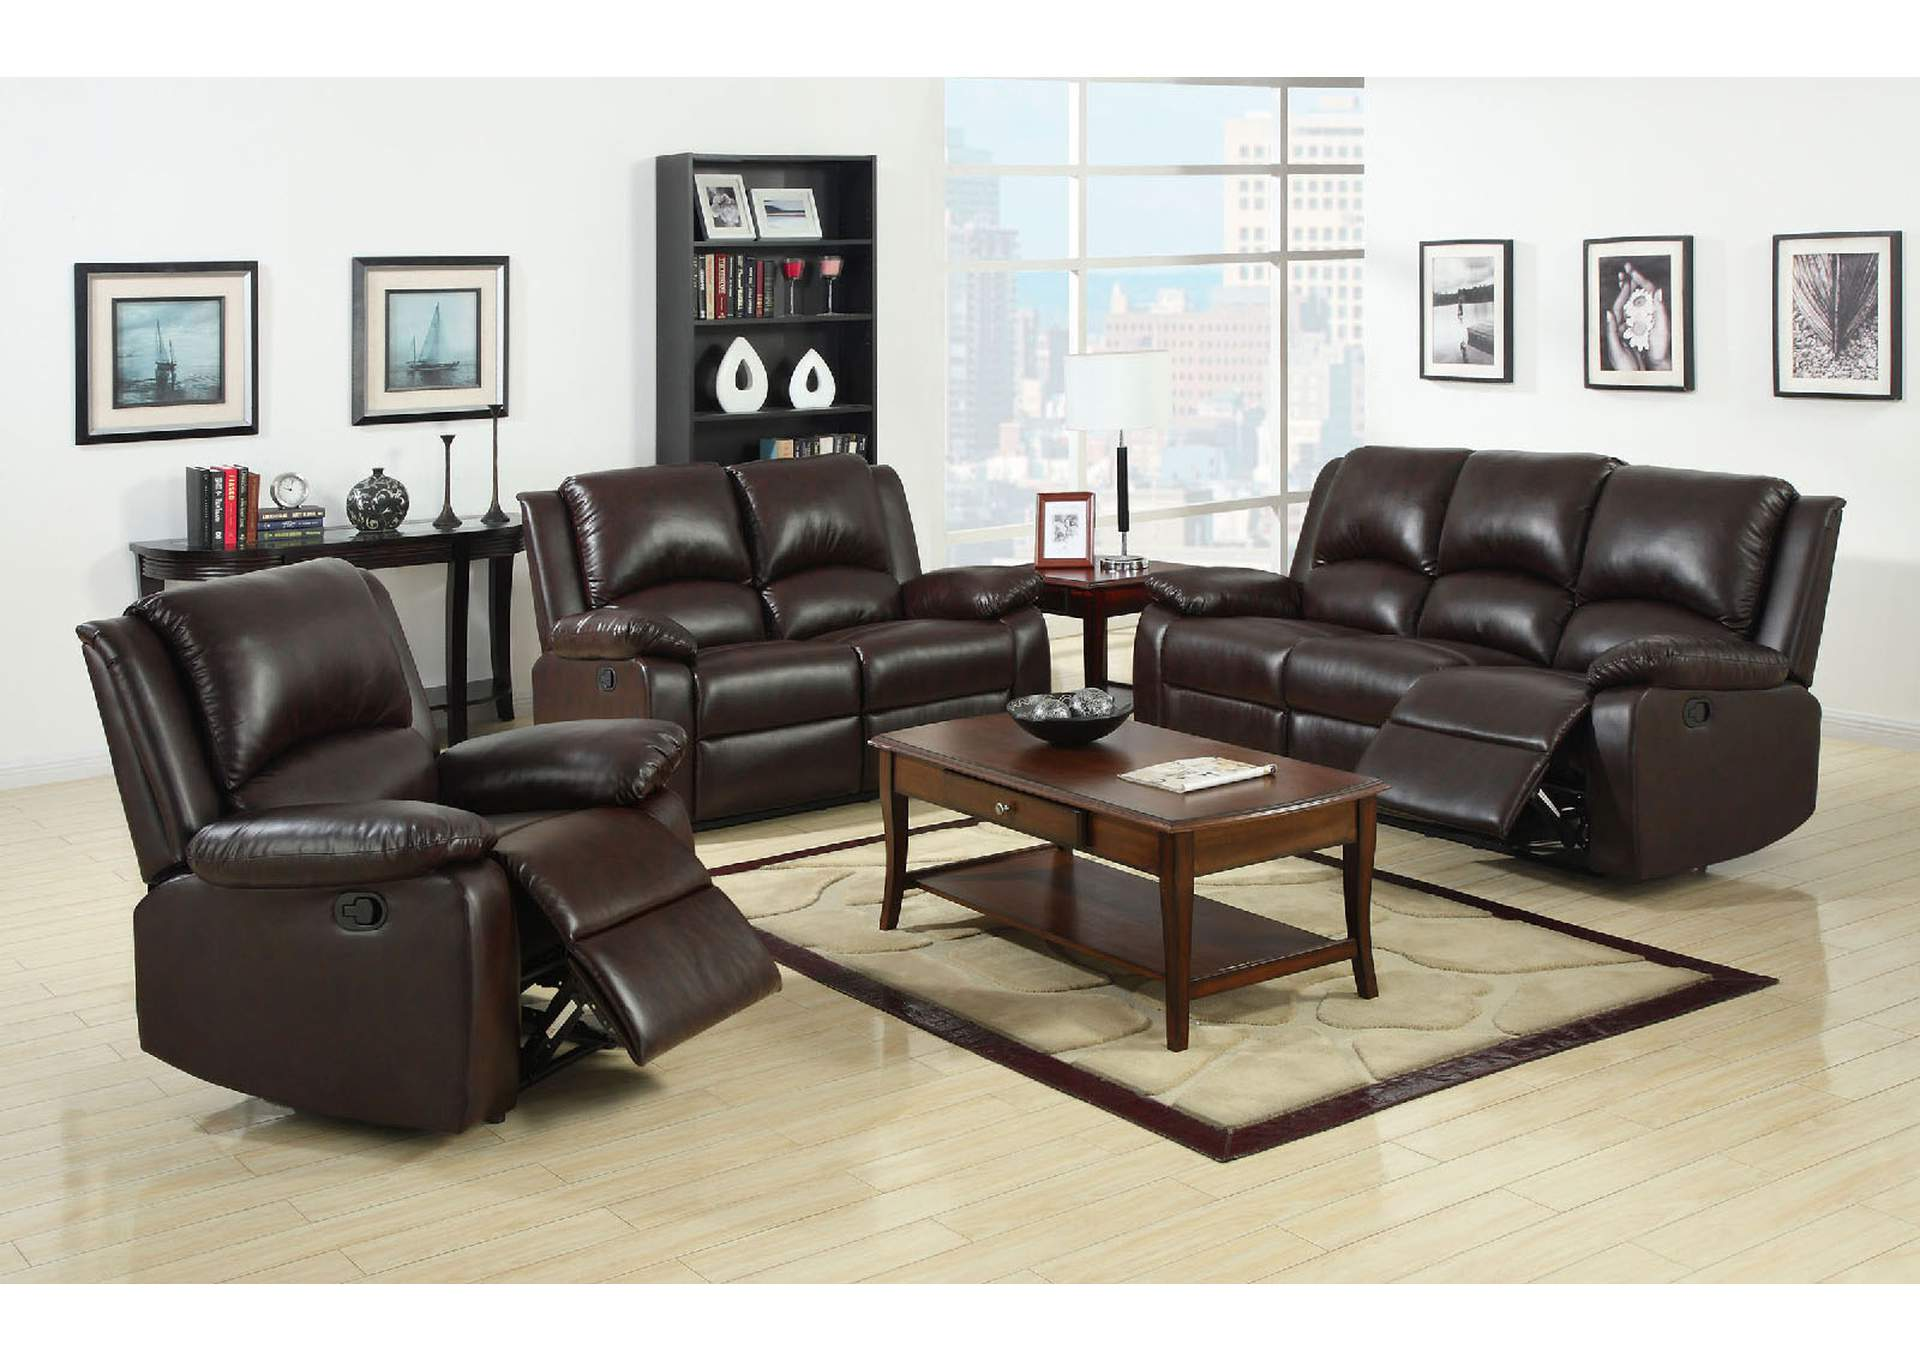 Just Furniture Oxford Rustic Dark Brown Motion Sofa and Loveseat